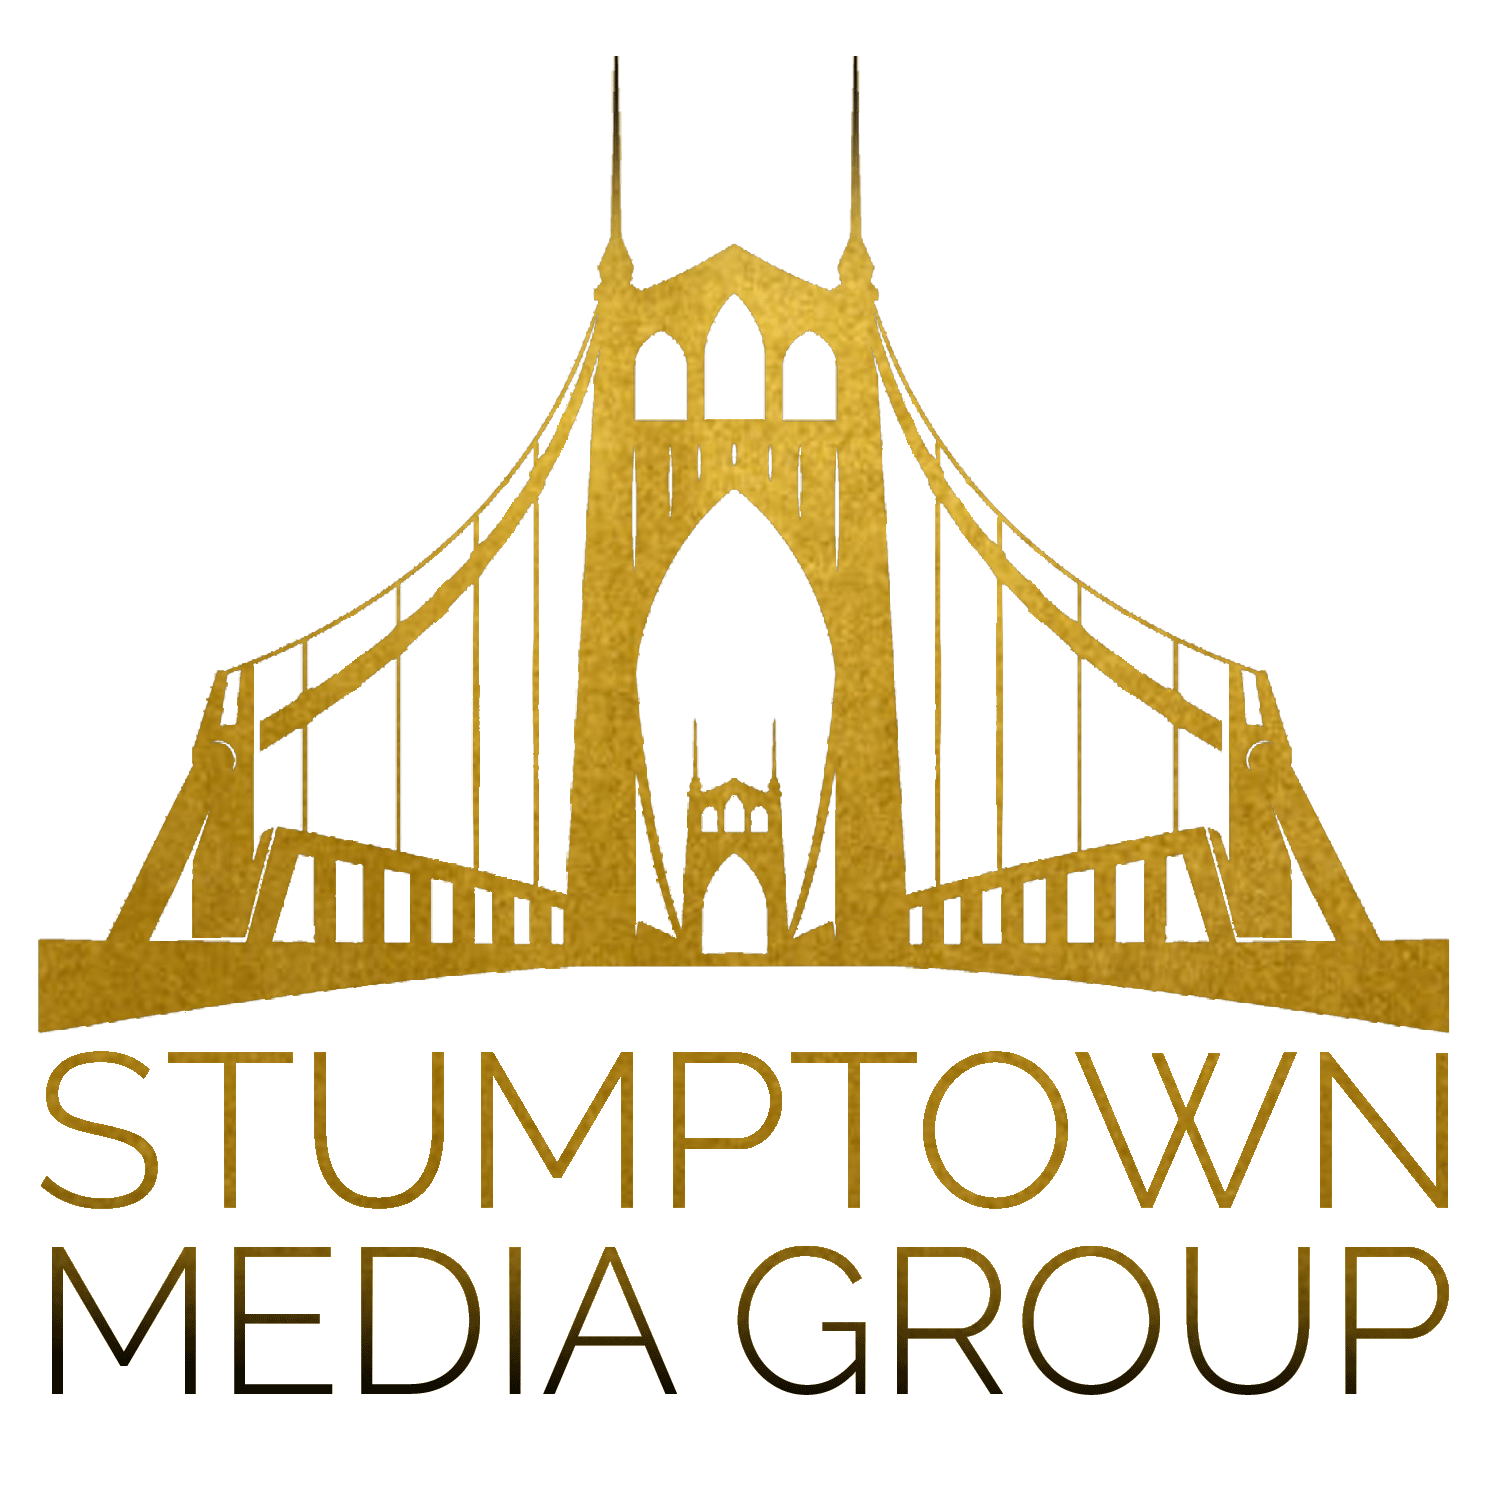 Stumptown Media Group